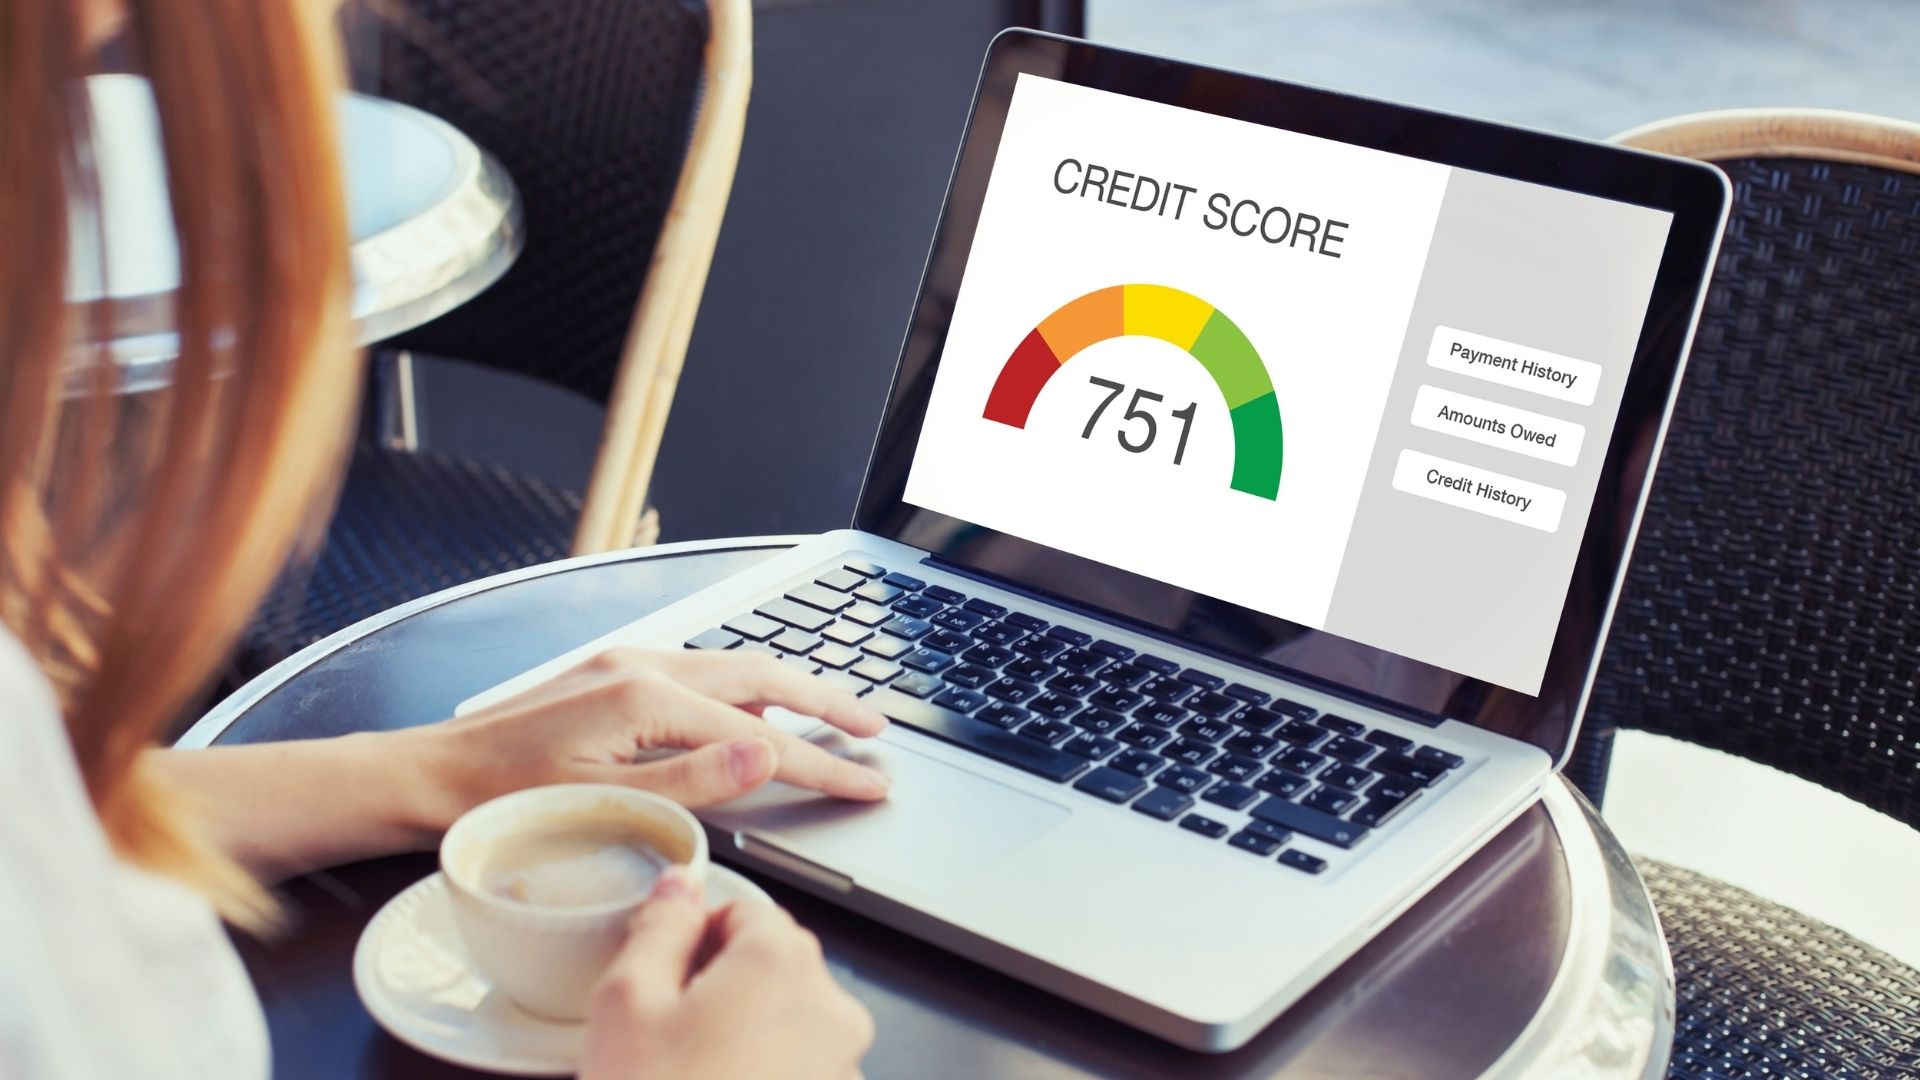 Why is credit score so important?